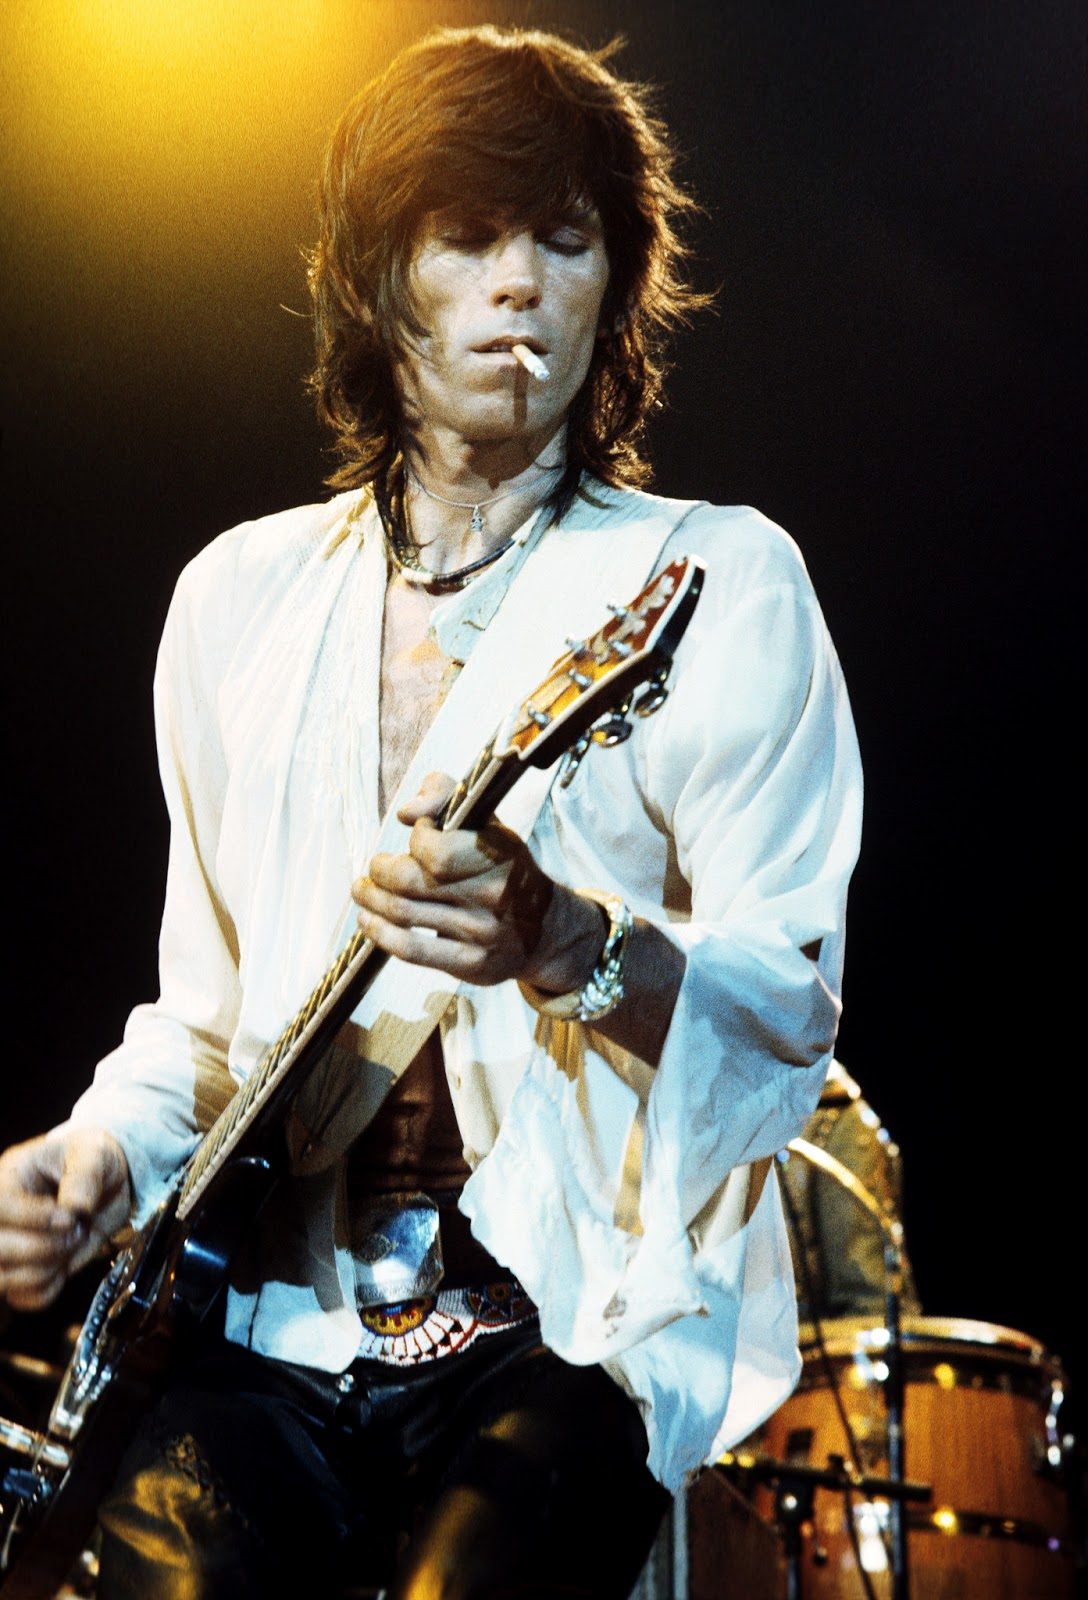 Keith Richards Images - #GolfClub